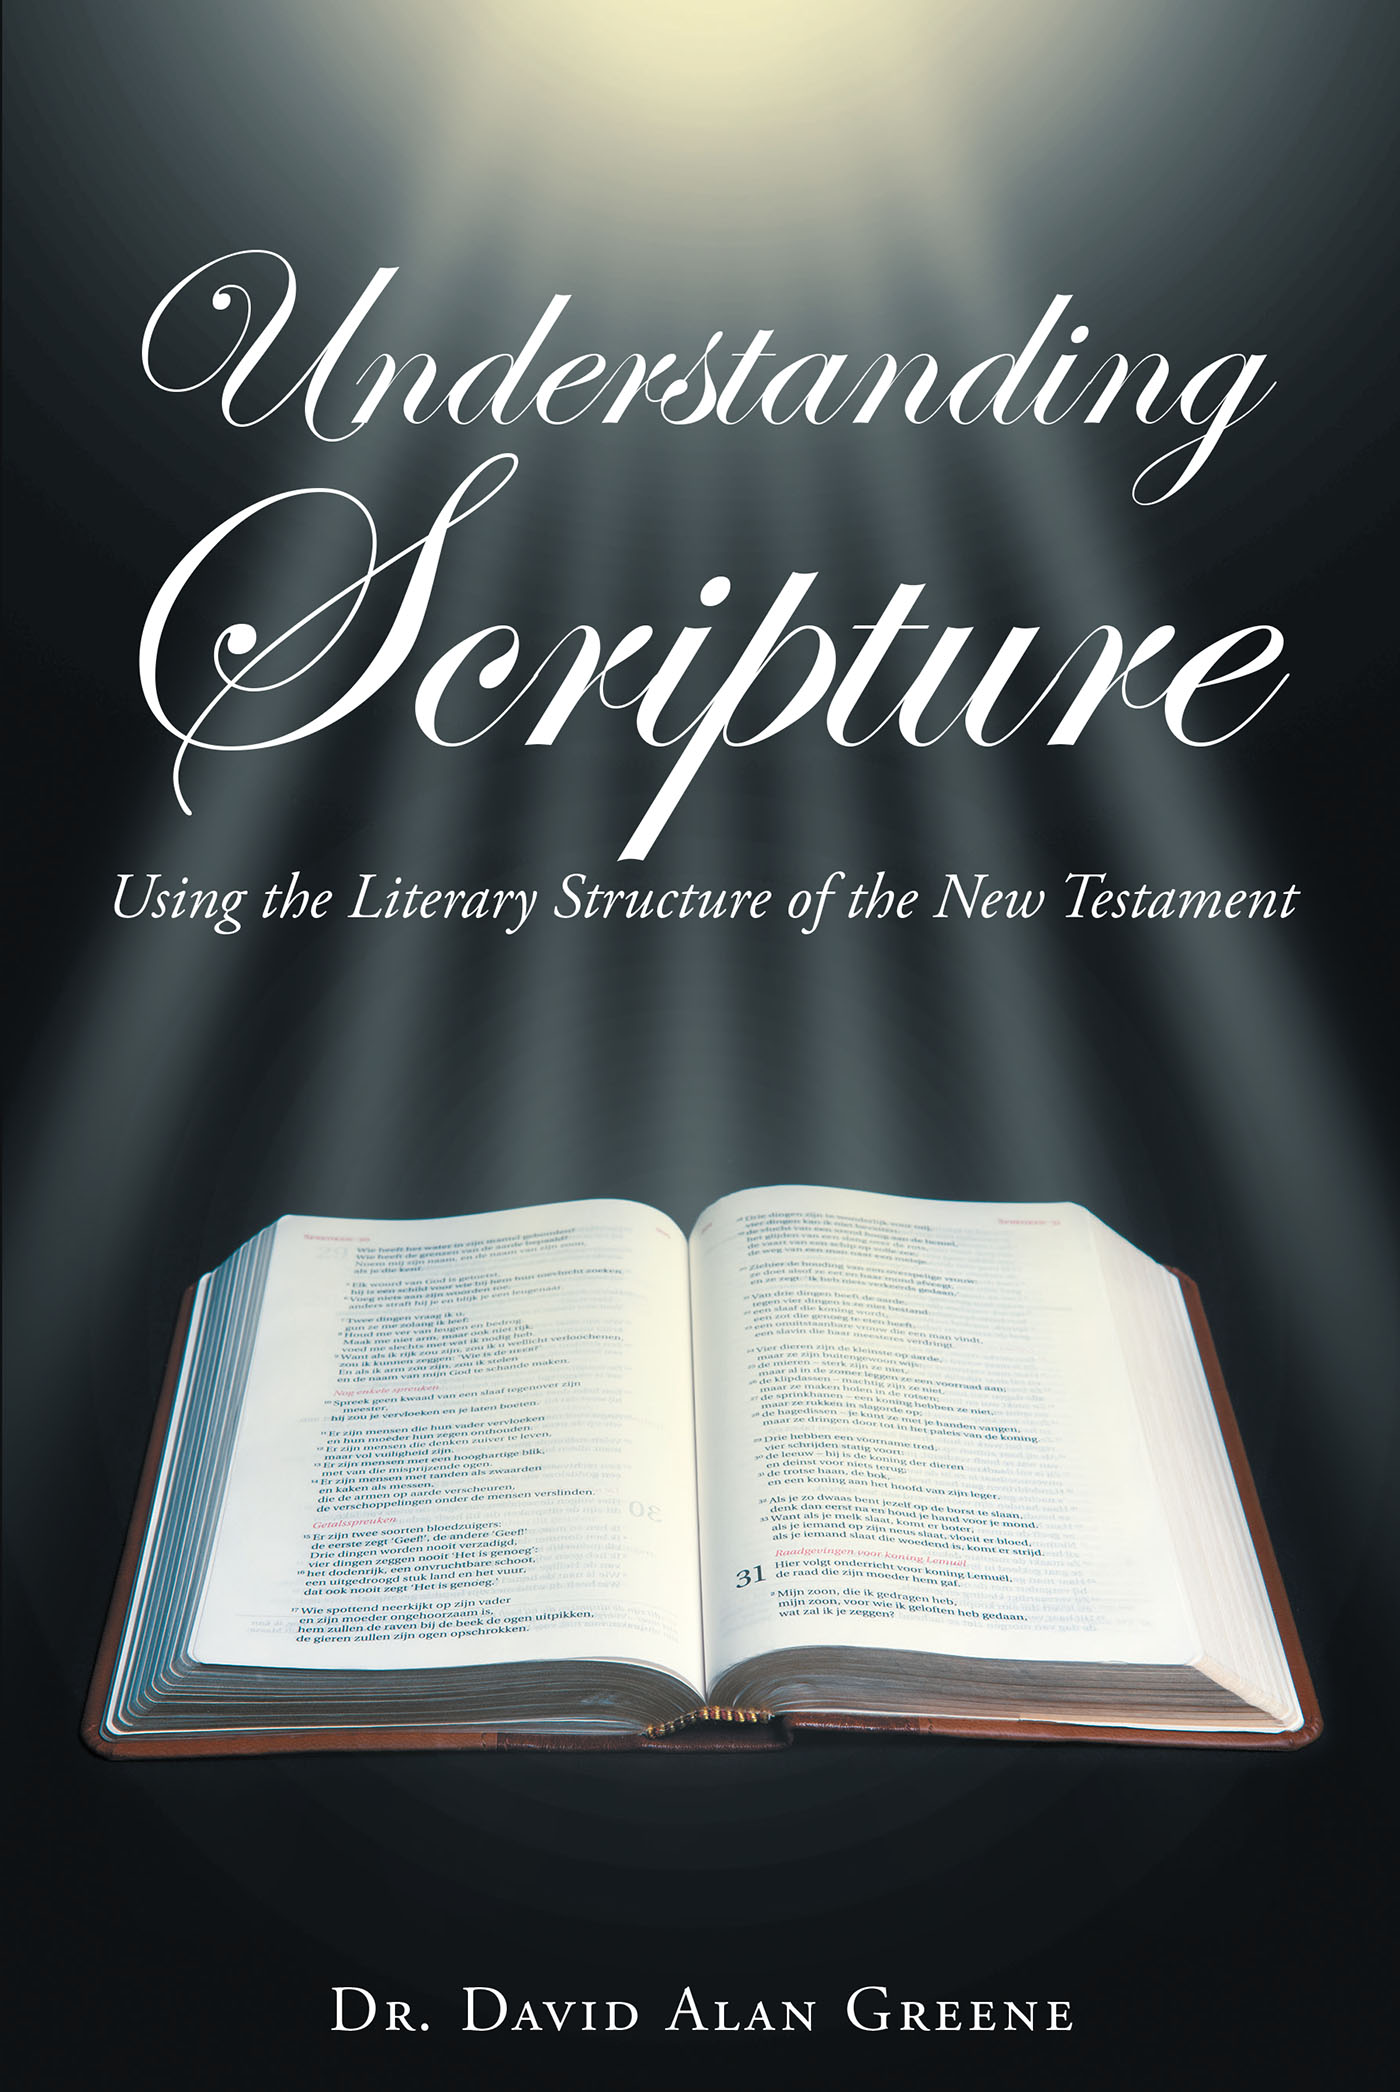 an analysis of the scriptures of the new testament The new testament interpretation of the old testament: according to the scriptures, nisbet, london new testament apologetic.